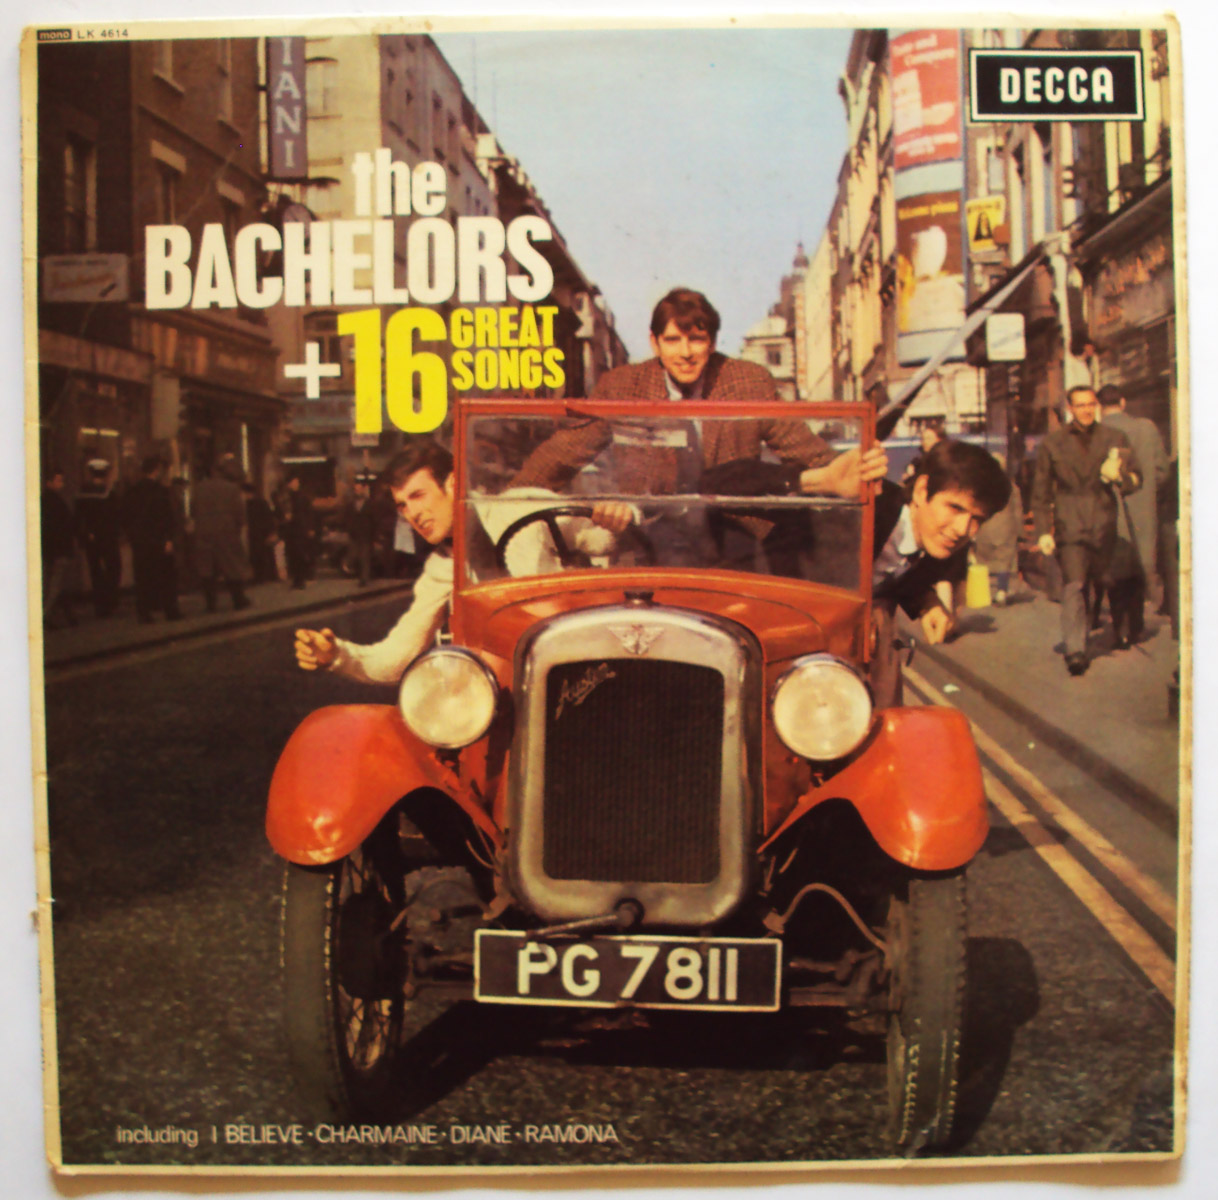 Bachelors, the 16 great songs